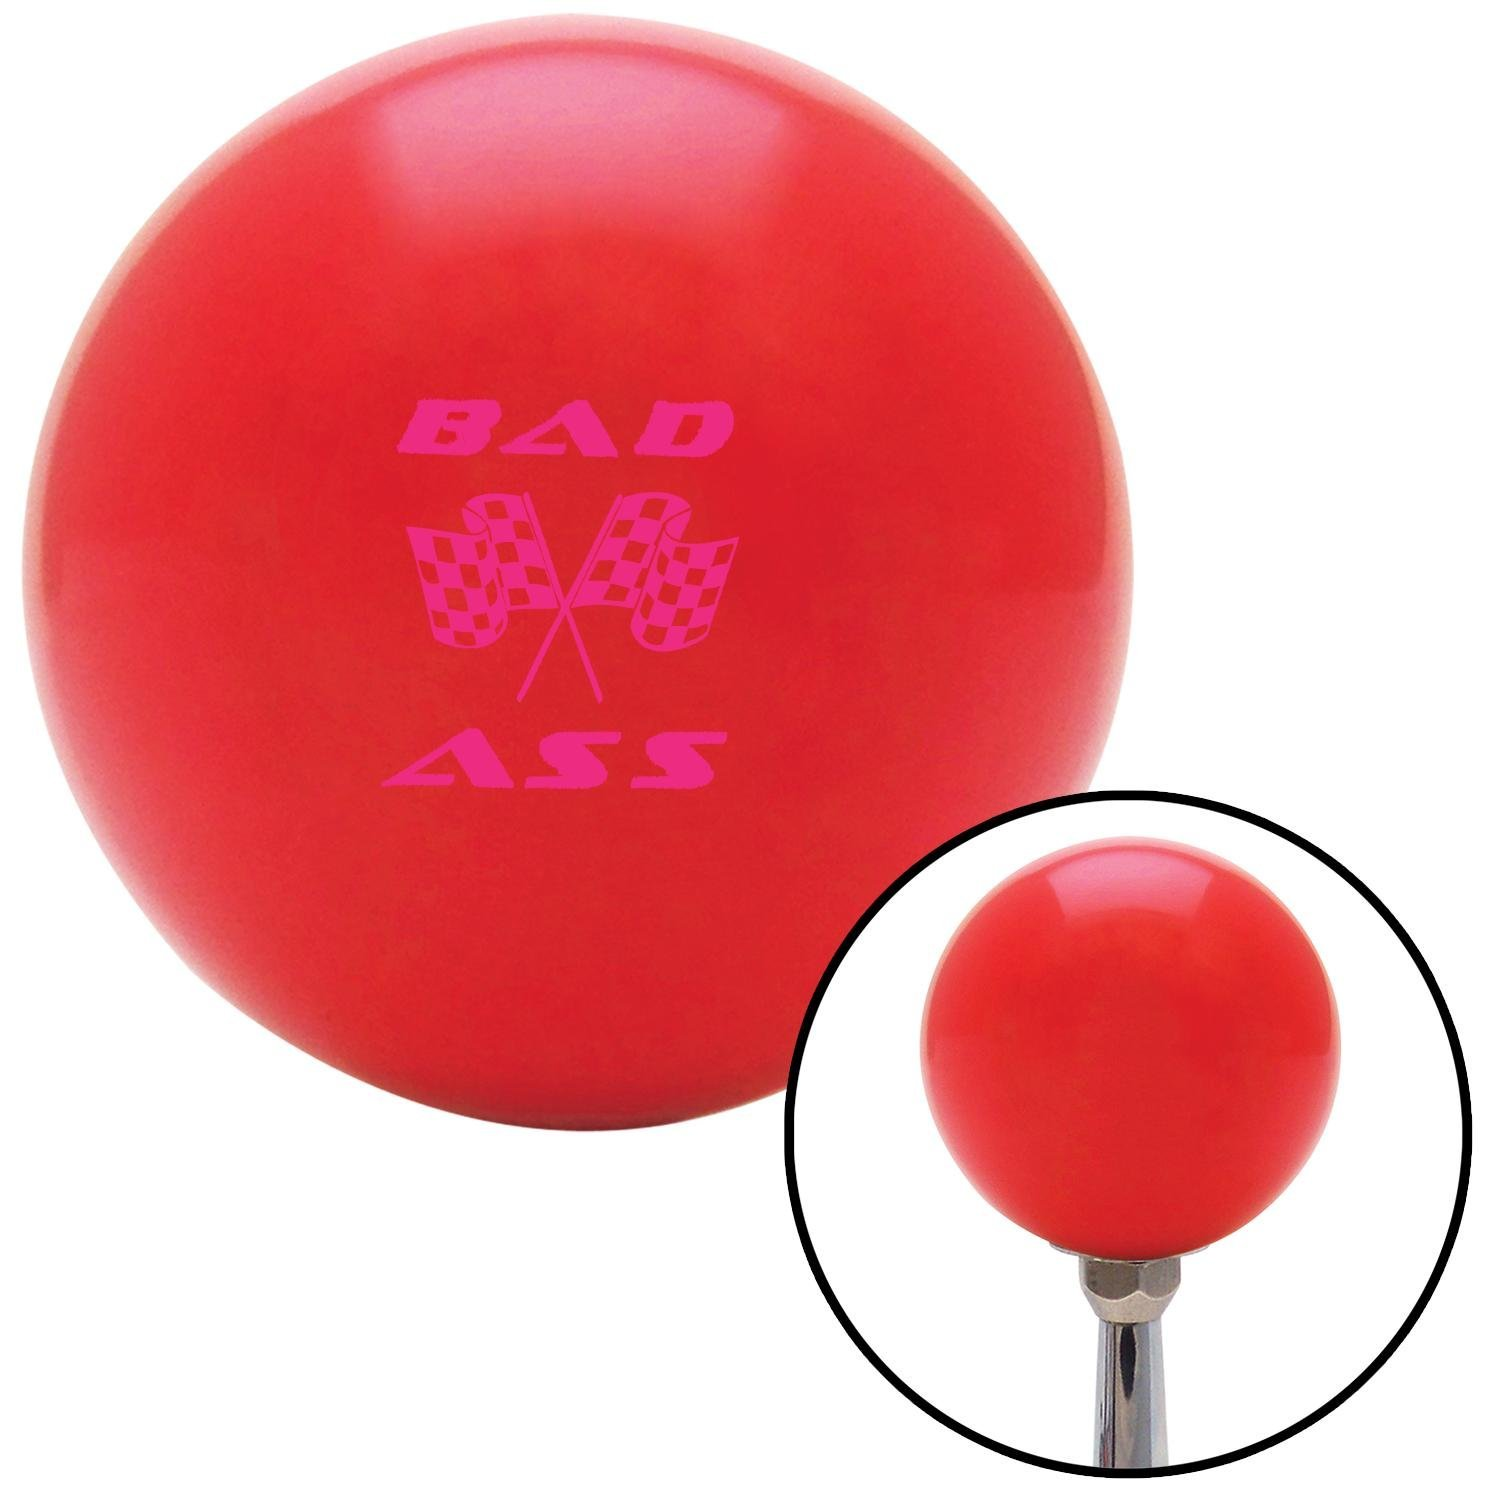 American Shifter 94274 Red Shift Knob with M16 x 1.5 Insert Pink Bad Ass Flags